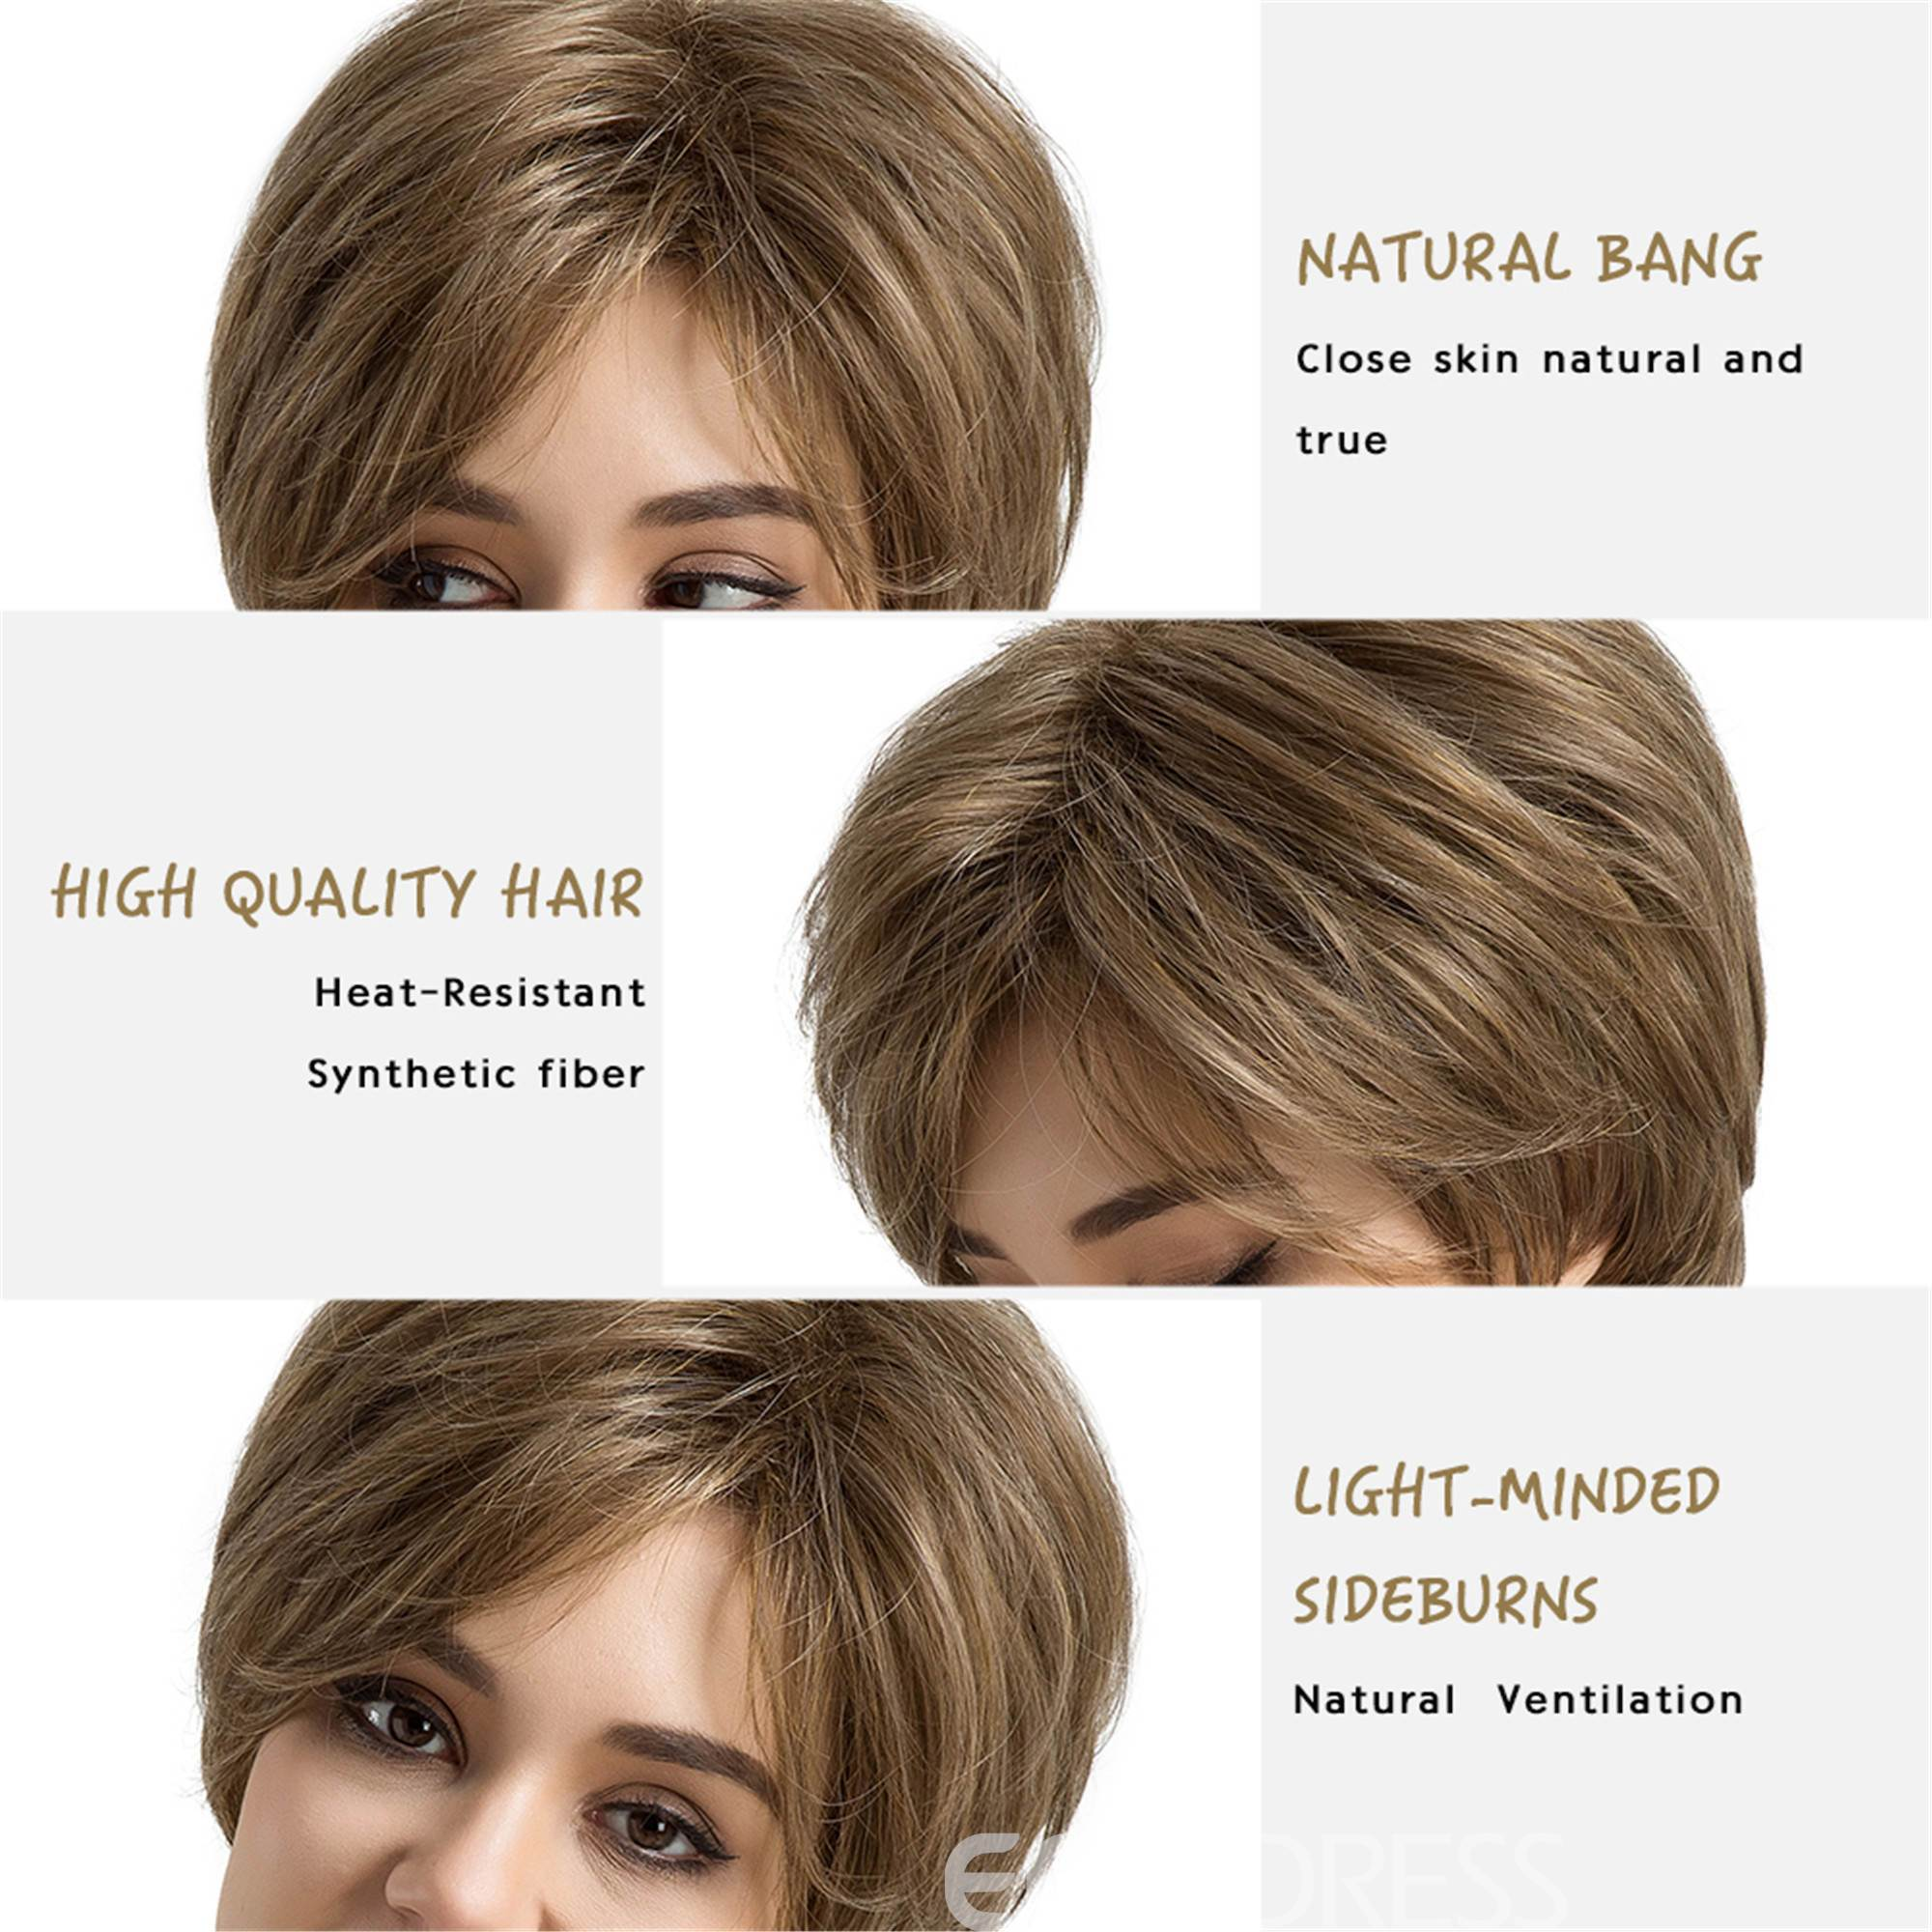 Fringe Short Hair Synthetic Capless Wigs For Women 10 inches